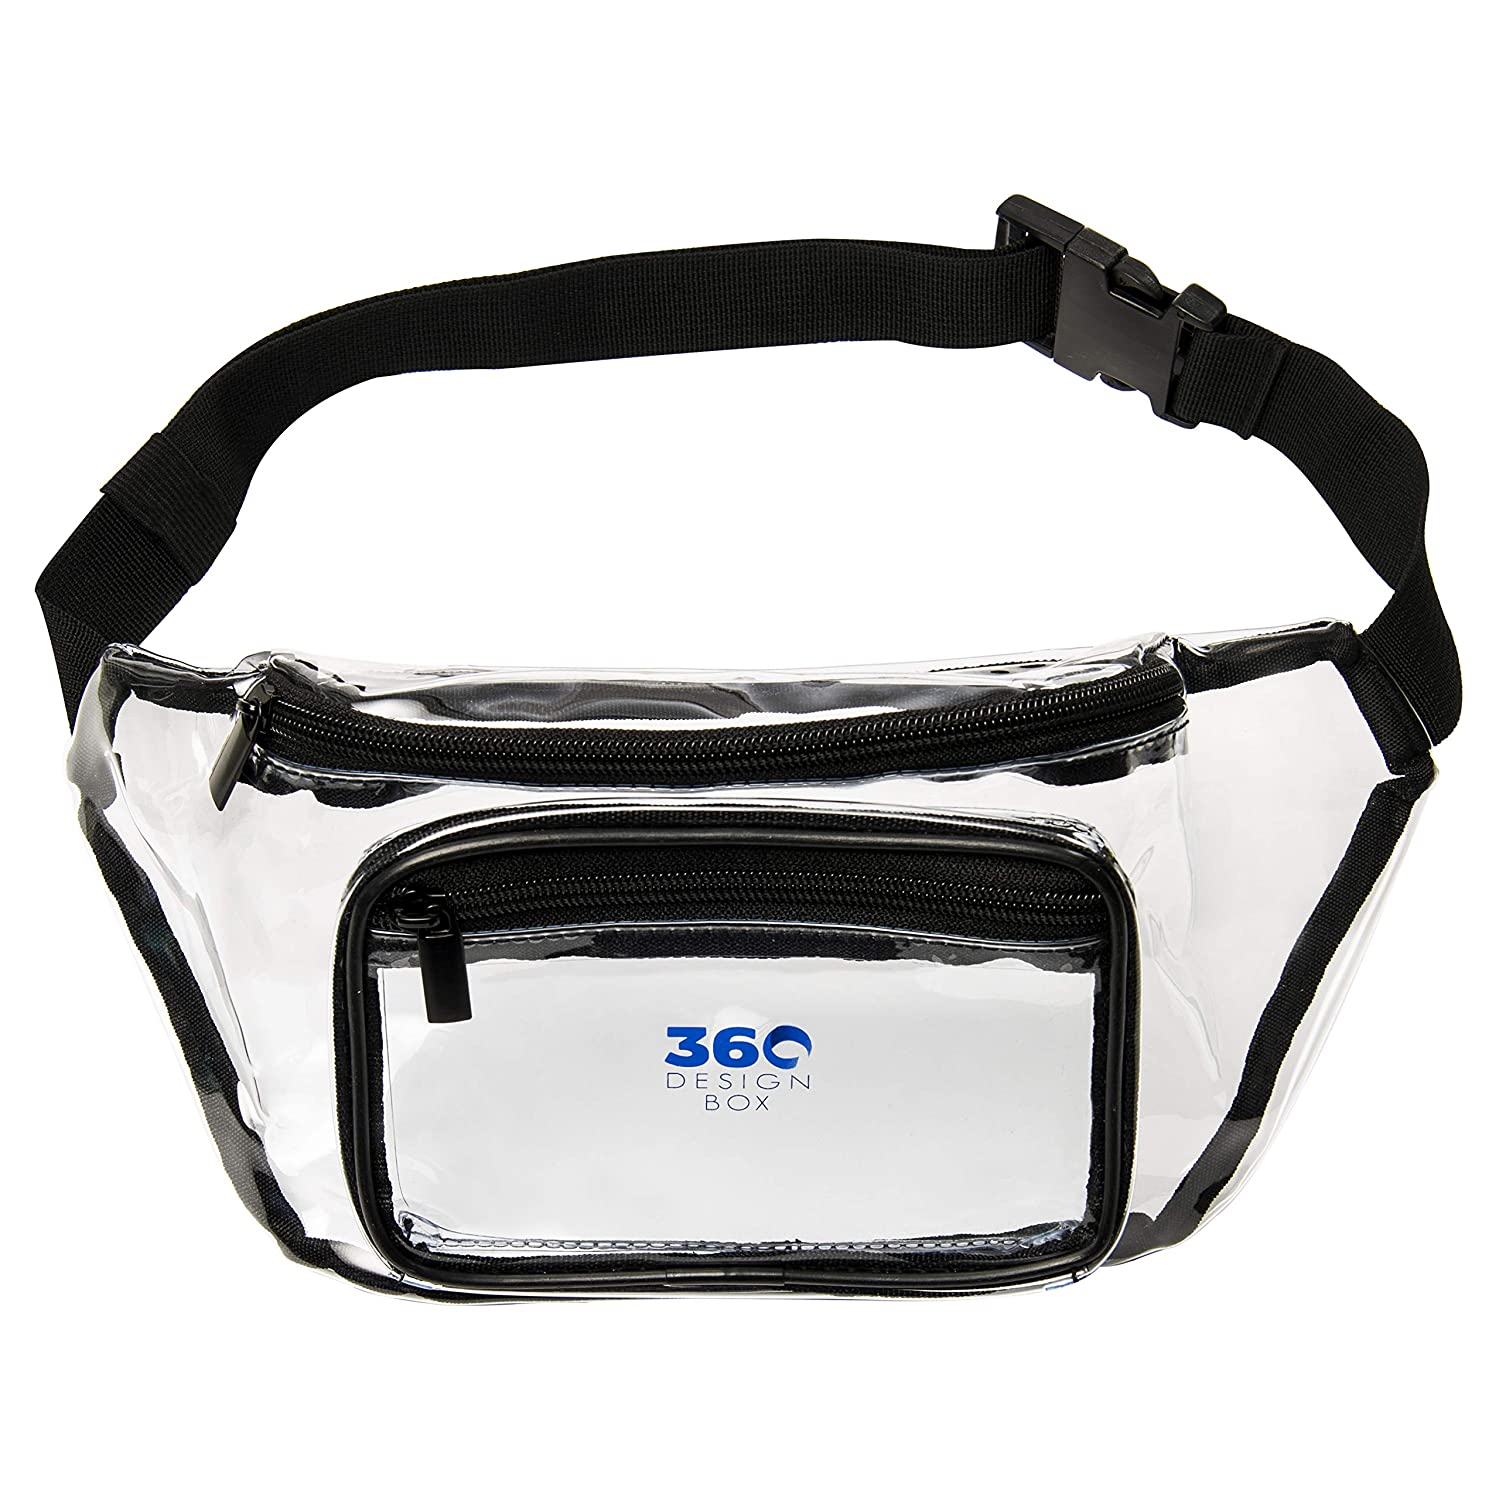 NFL Clear Bag Stadium Approved 360 DESIGN BOX Clear Fanny Pack Messenger Clear Purse for Festivals and Games Adjustable Transparent Clear Waist Bag